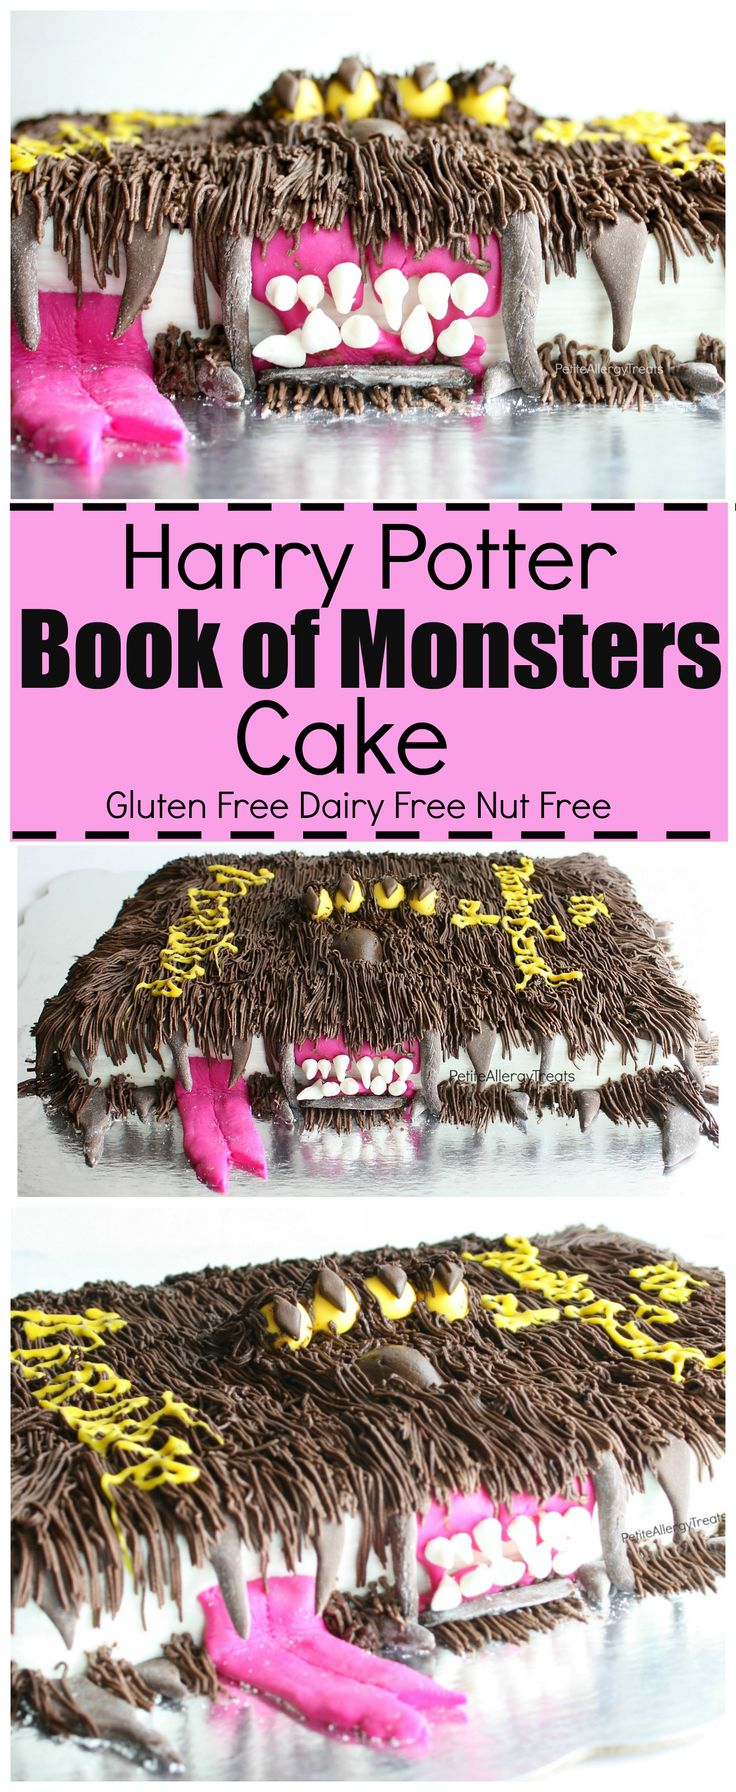 Harry Potter Book Free : Gluten free harry potter book of monsters cake recipe